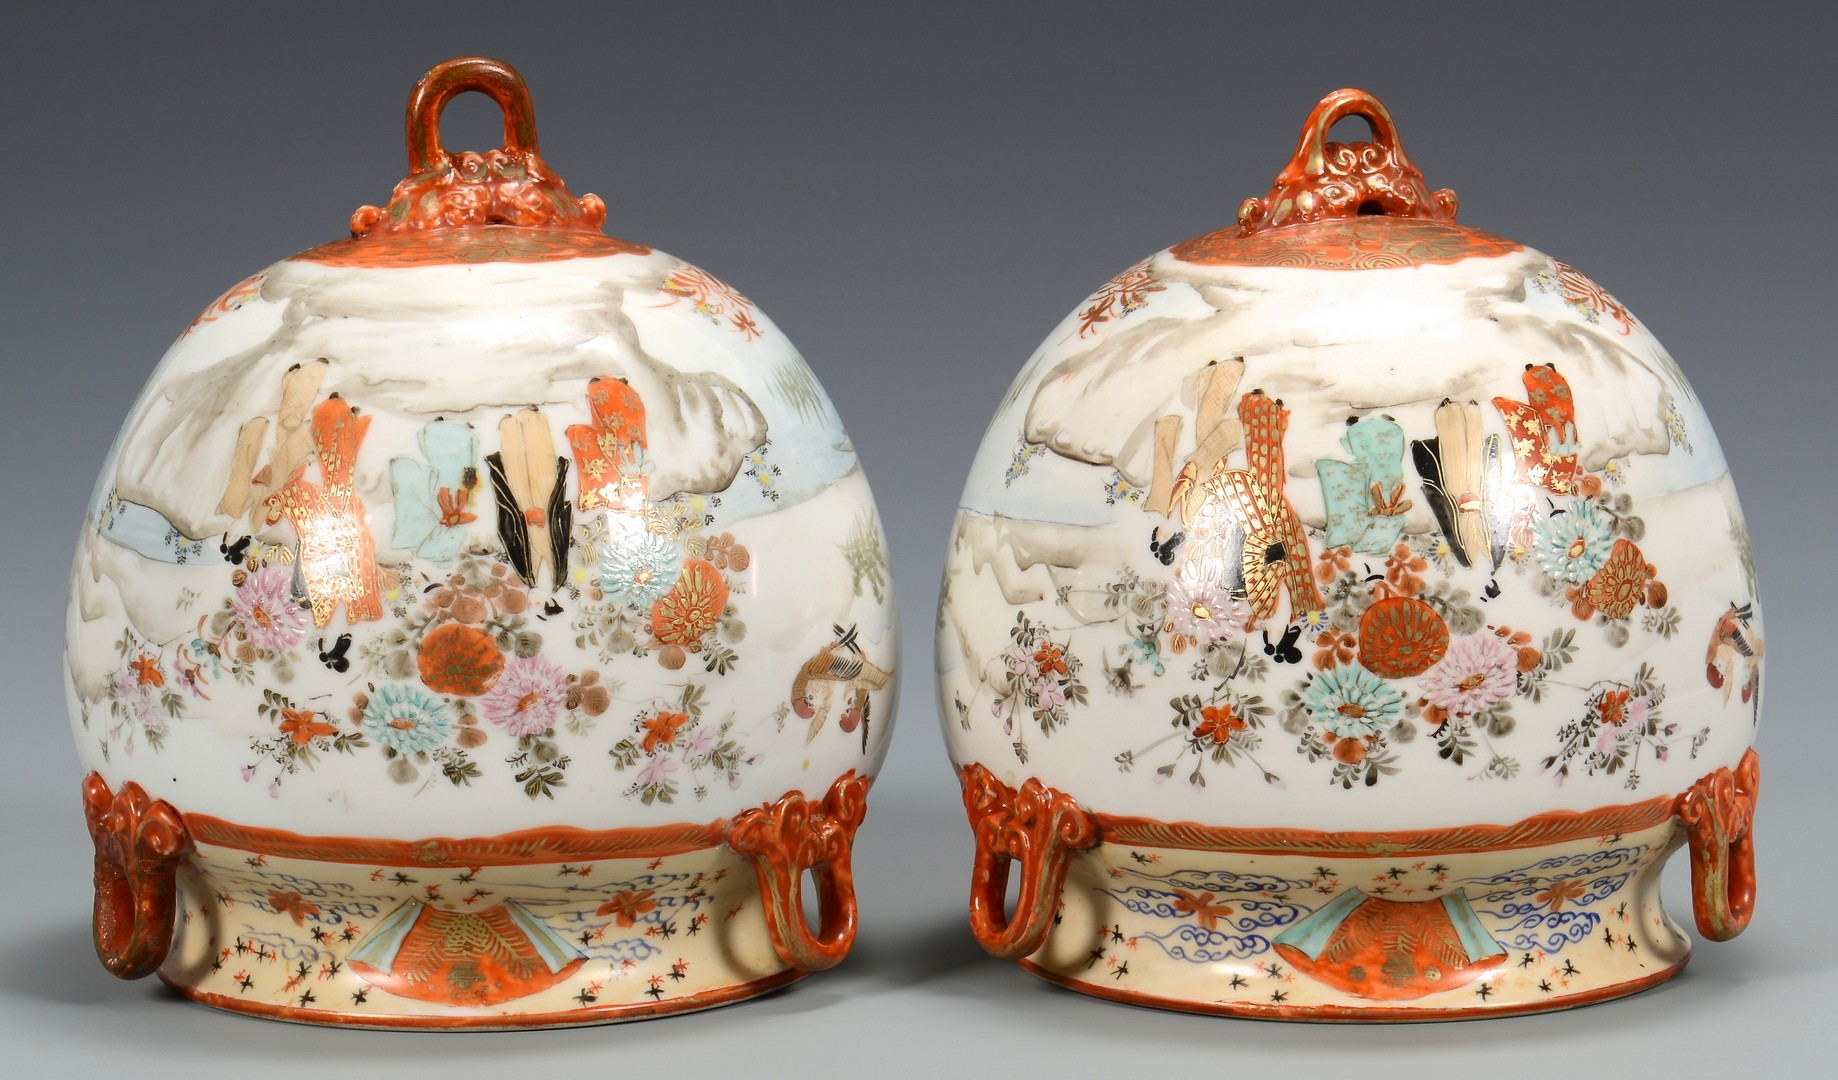 Lot 3832426: 4 Japanese items: 2 vases, 2 Femers